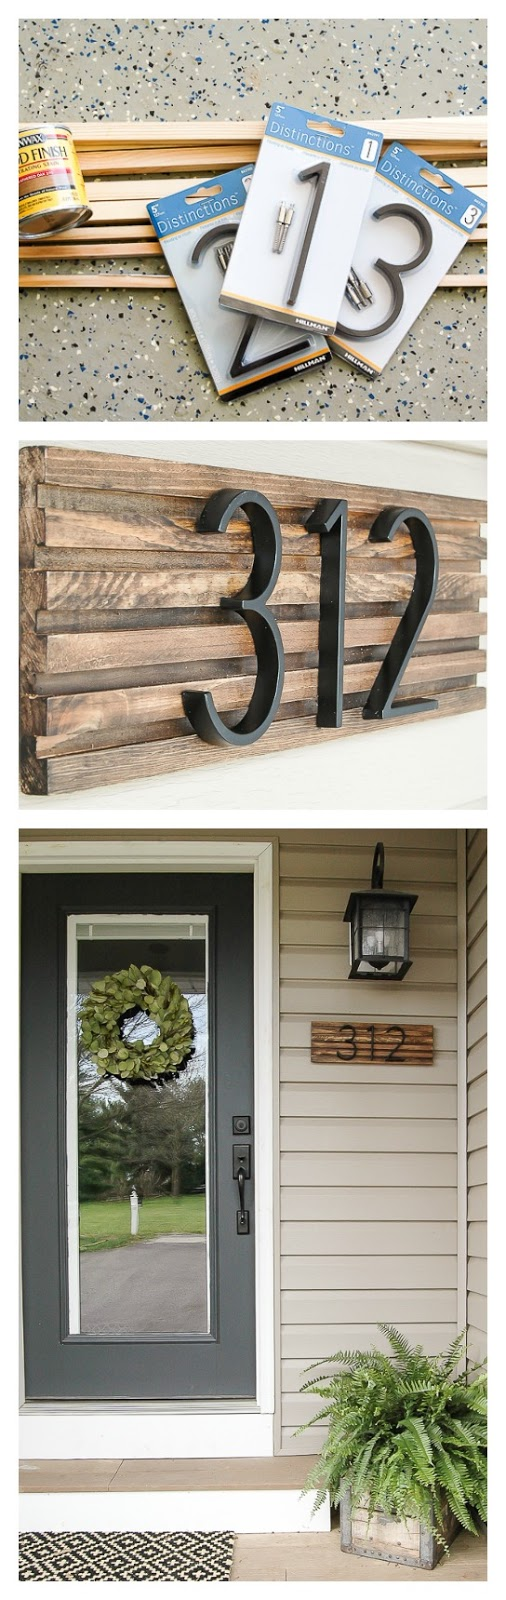 a8582a43f5c How to Make a Modern House Number Sign